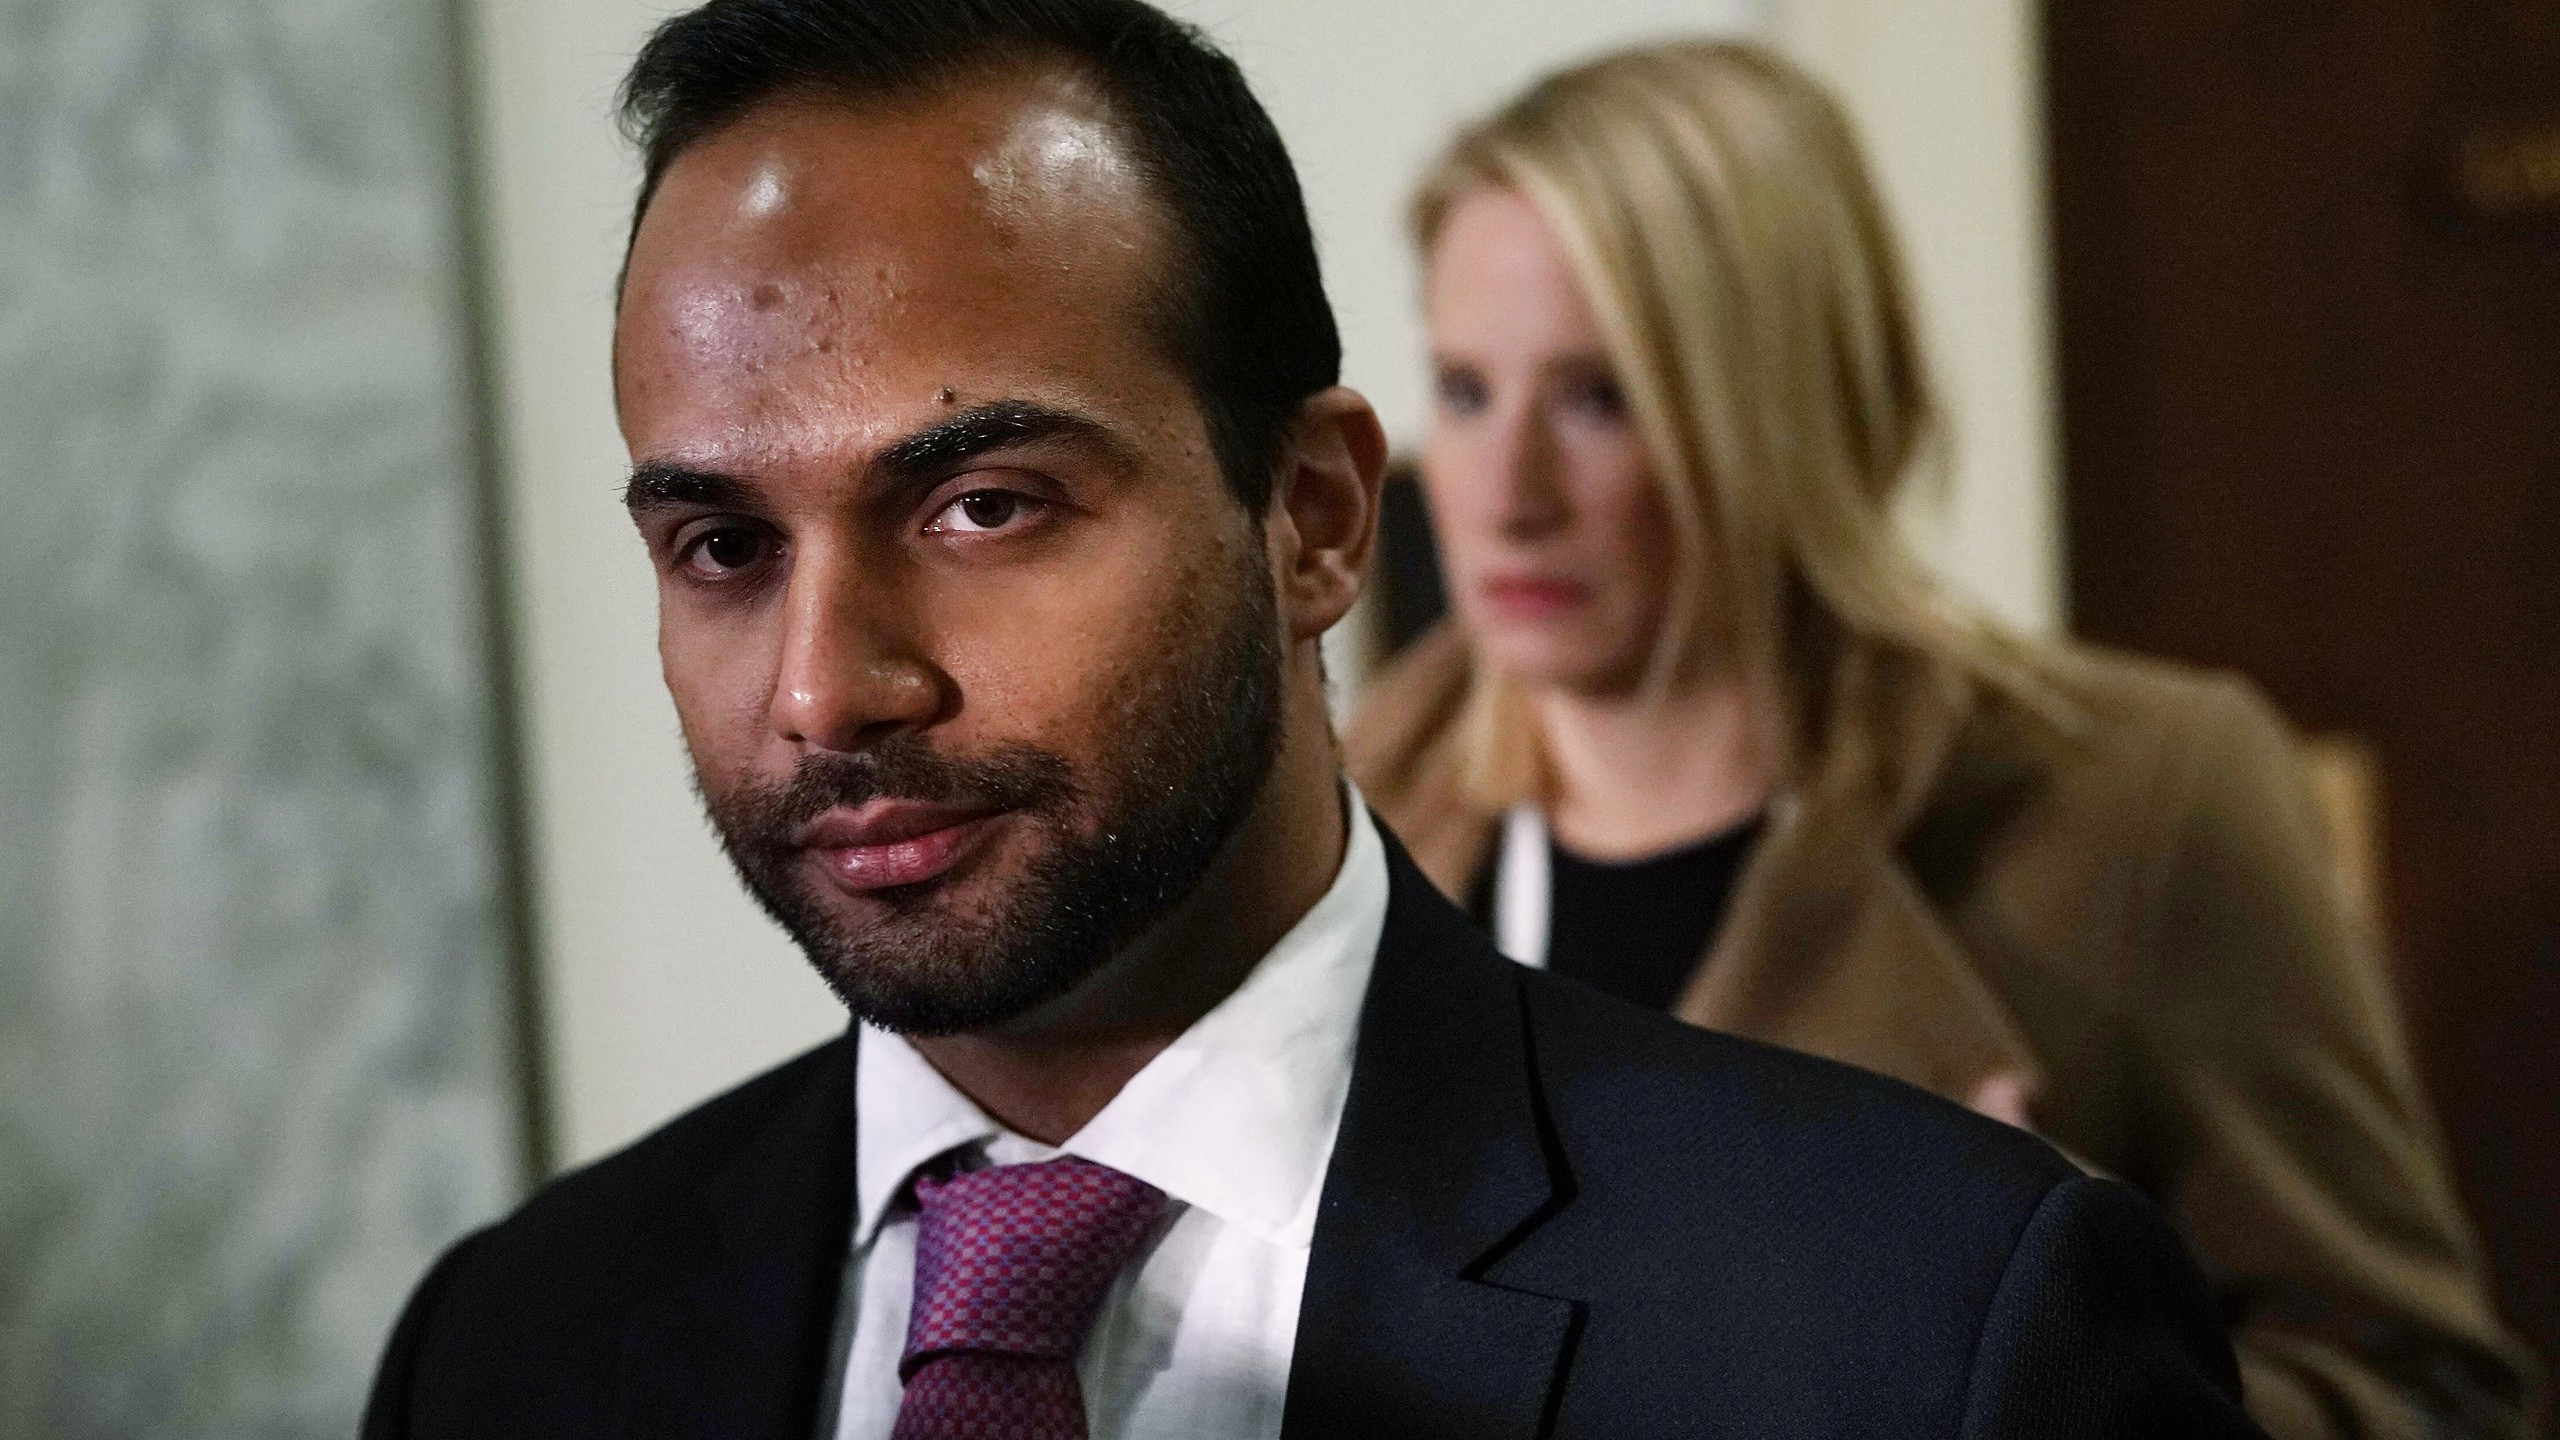 Former Trump campaign adviser George Papadopoulos arrives at a closed-door hearing before the House Judiciary and Oversight Committee on Oct. 25, 2018. (Credit: Alex Wong/Getty Images)